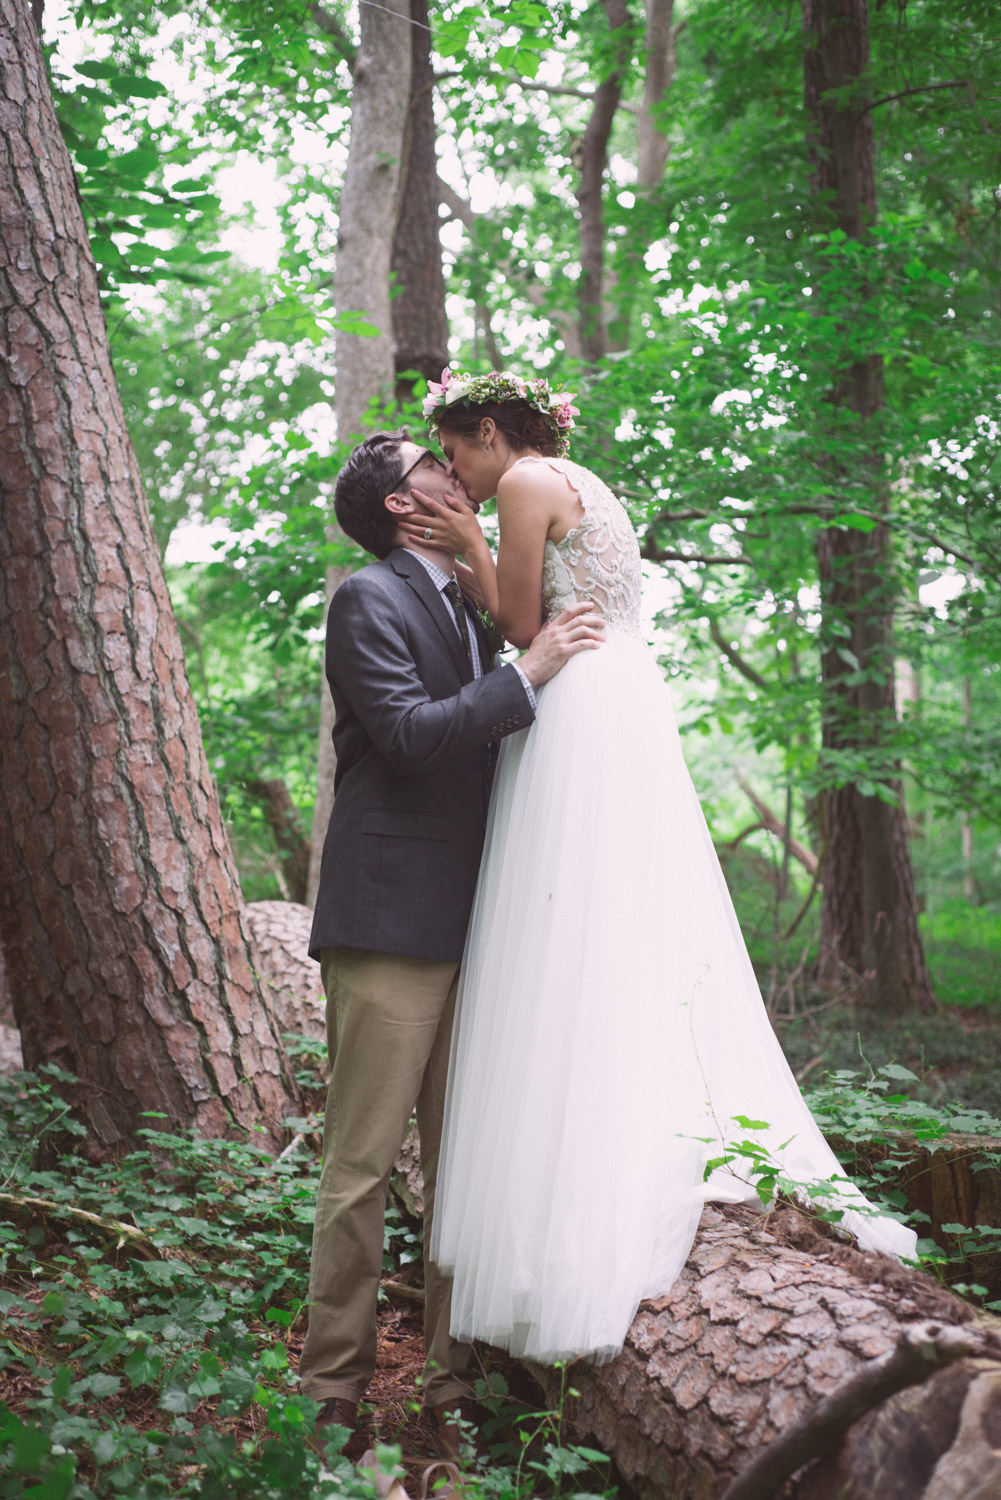 Atlanta Wedding Photographer | LeahAndMark & Co. | McDaniel Farm Park